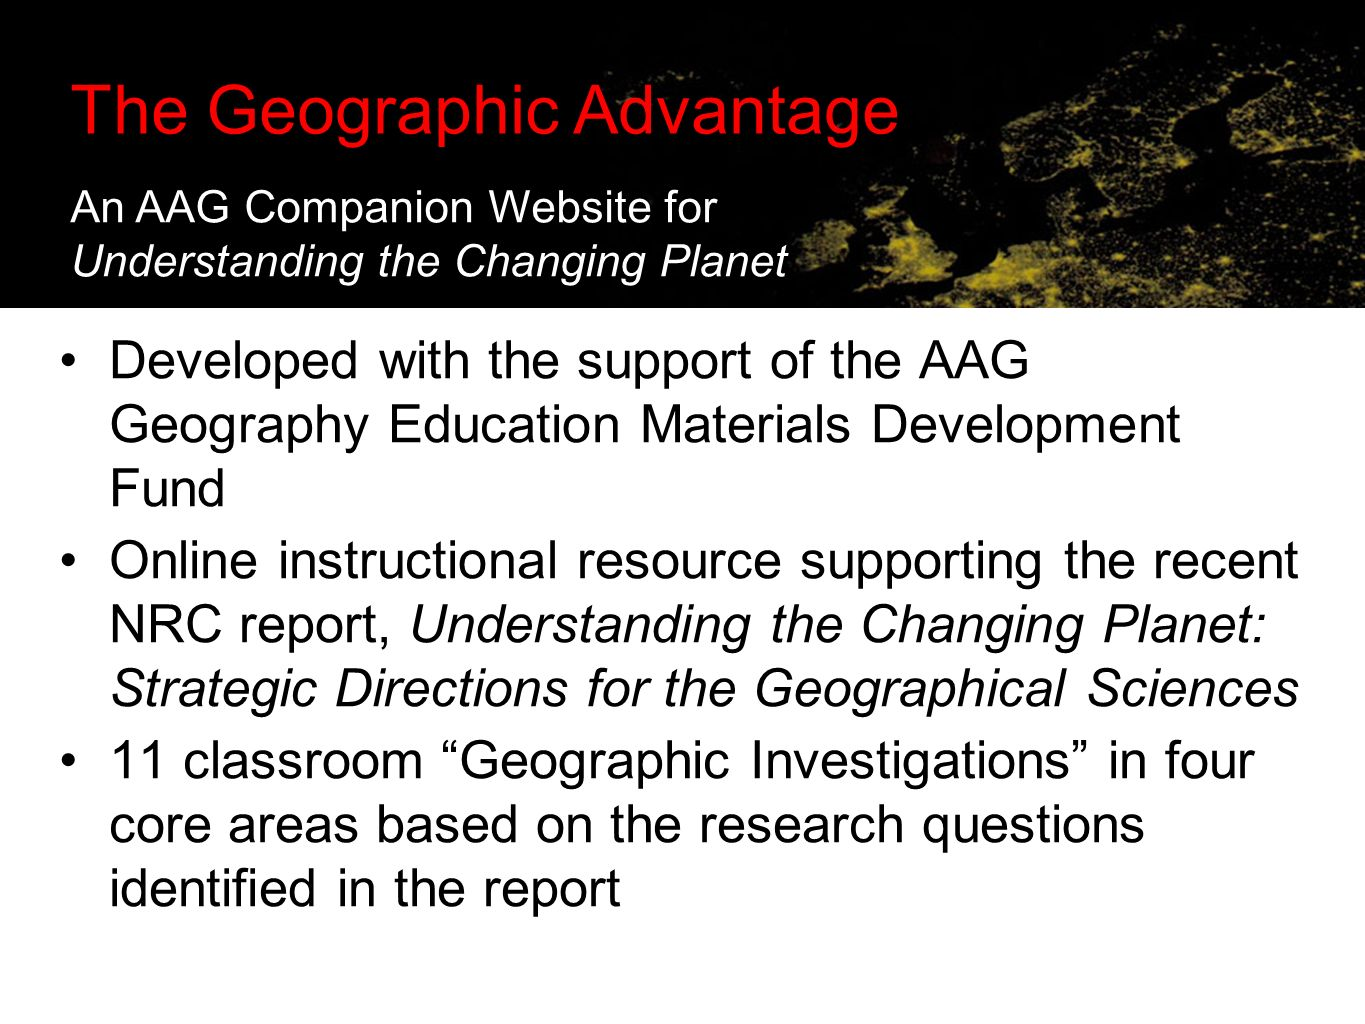 The Geographic Advantage: Supporting Online Investigations in the Classroom Developed with the support of the AAG Geography Education Materials Development Fund Online instructional resource supporting the recent NRC report, Understanding the Changing Planet: Strategic Directions for the Geographical Sciences 11 classroom Geographic Investigations in four core areas based on the research questions identified in the report The Geographic Advantage An AAG Companion Website for Understanding the Changing Planet